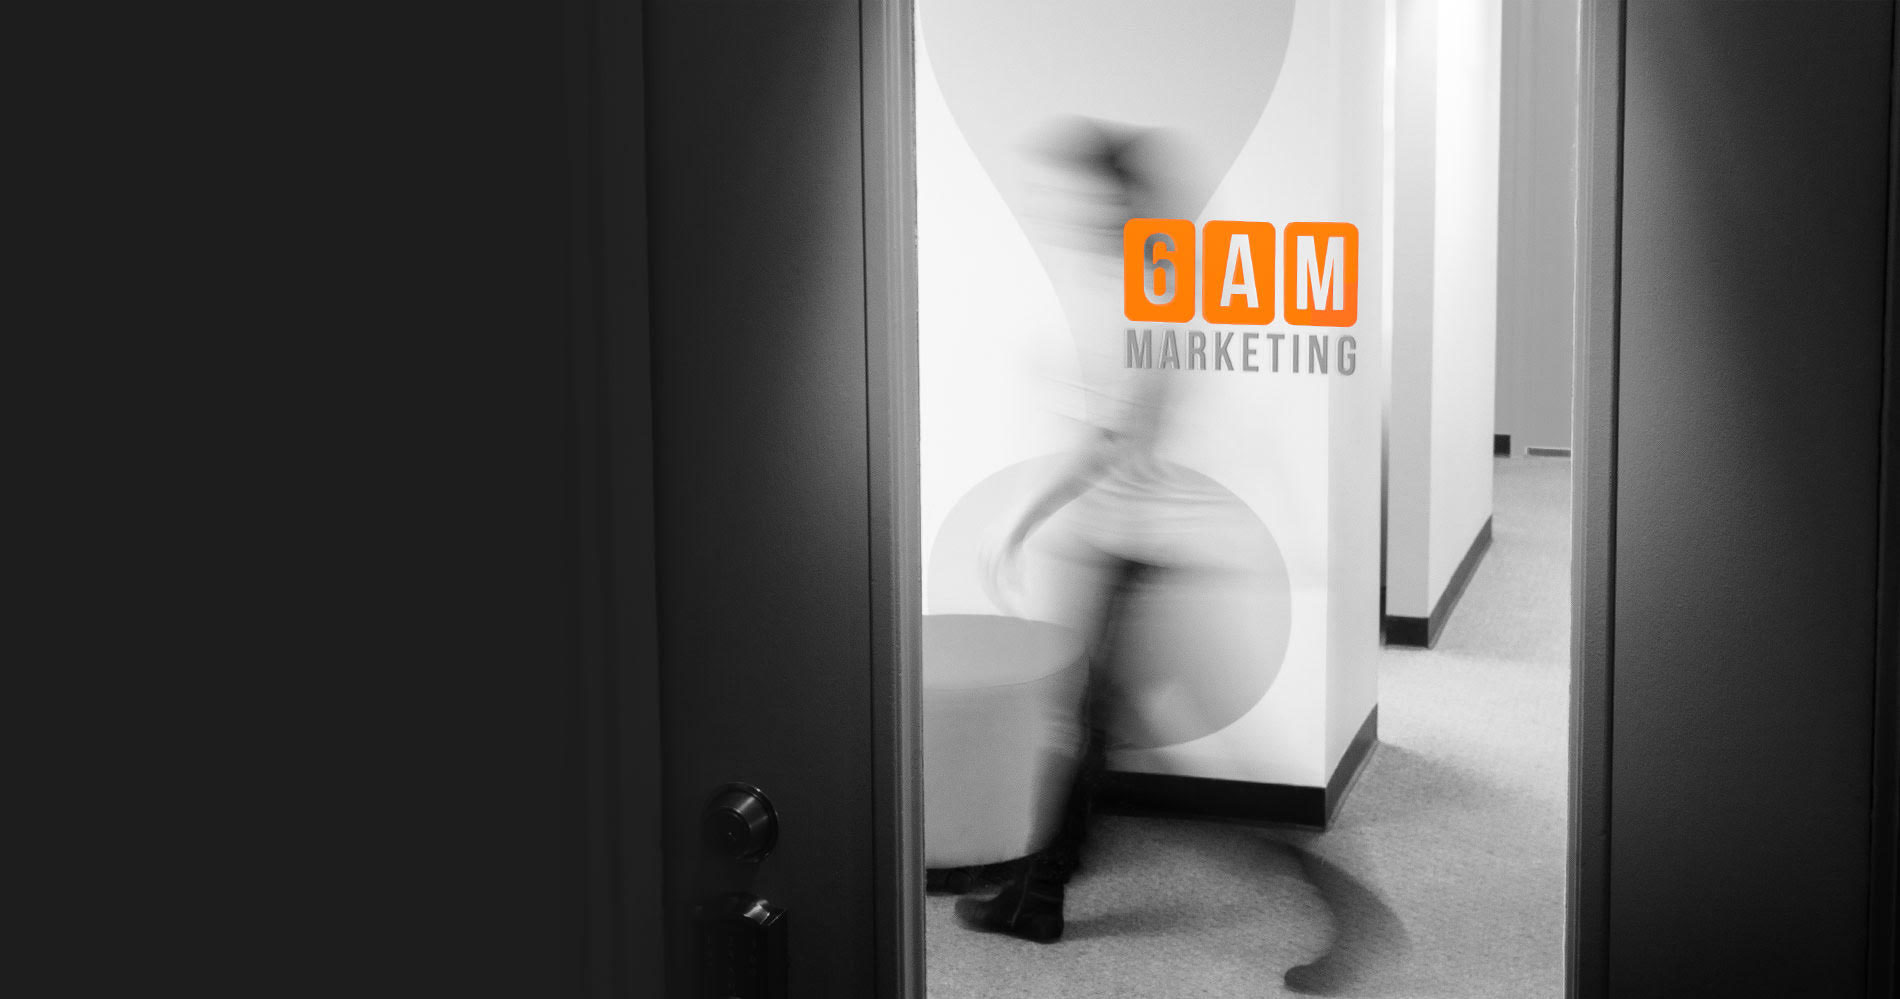 blurred streak of a person walking by as seen through the front door of 6AM Marketing